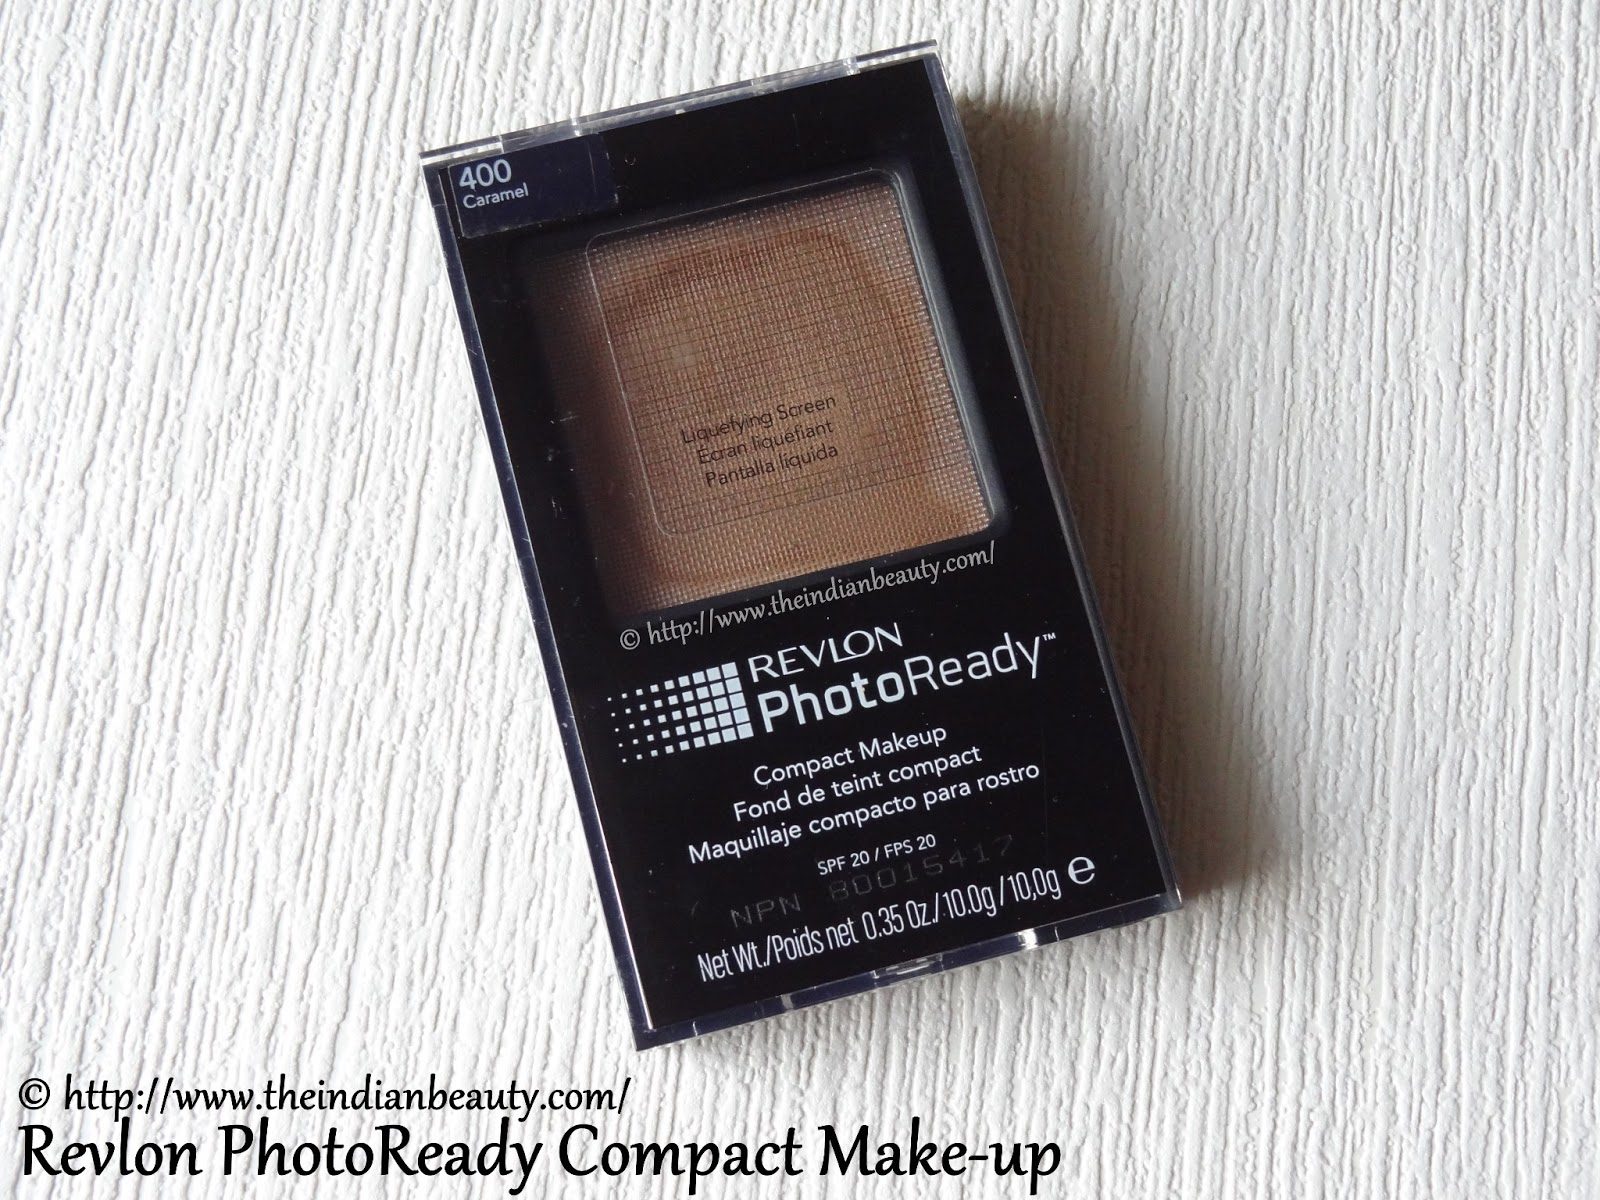 Revlon Photoready Compact Make Up 400 Caramel Review